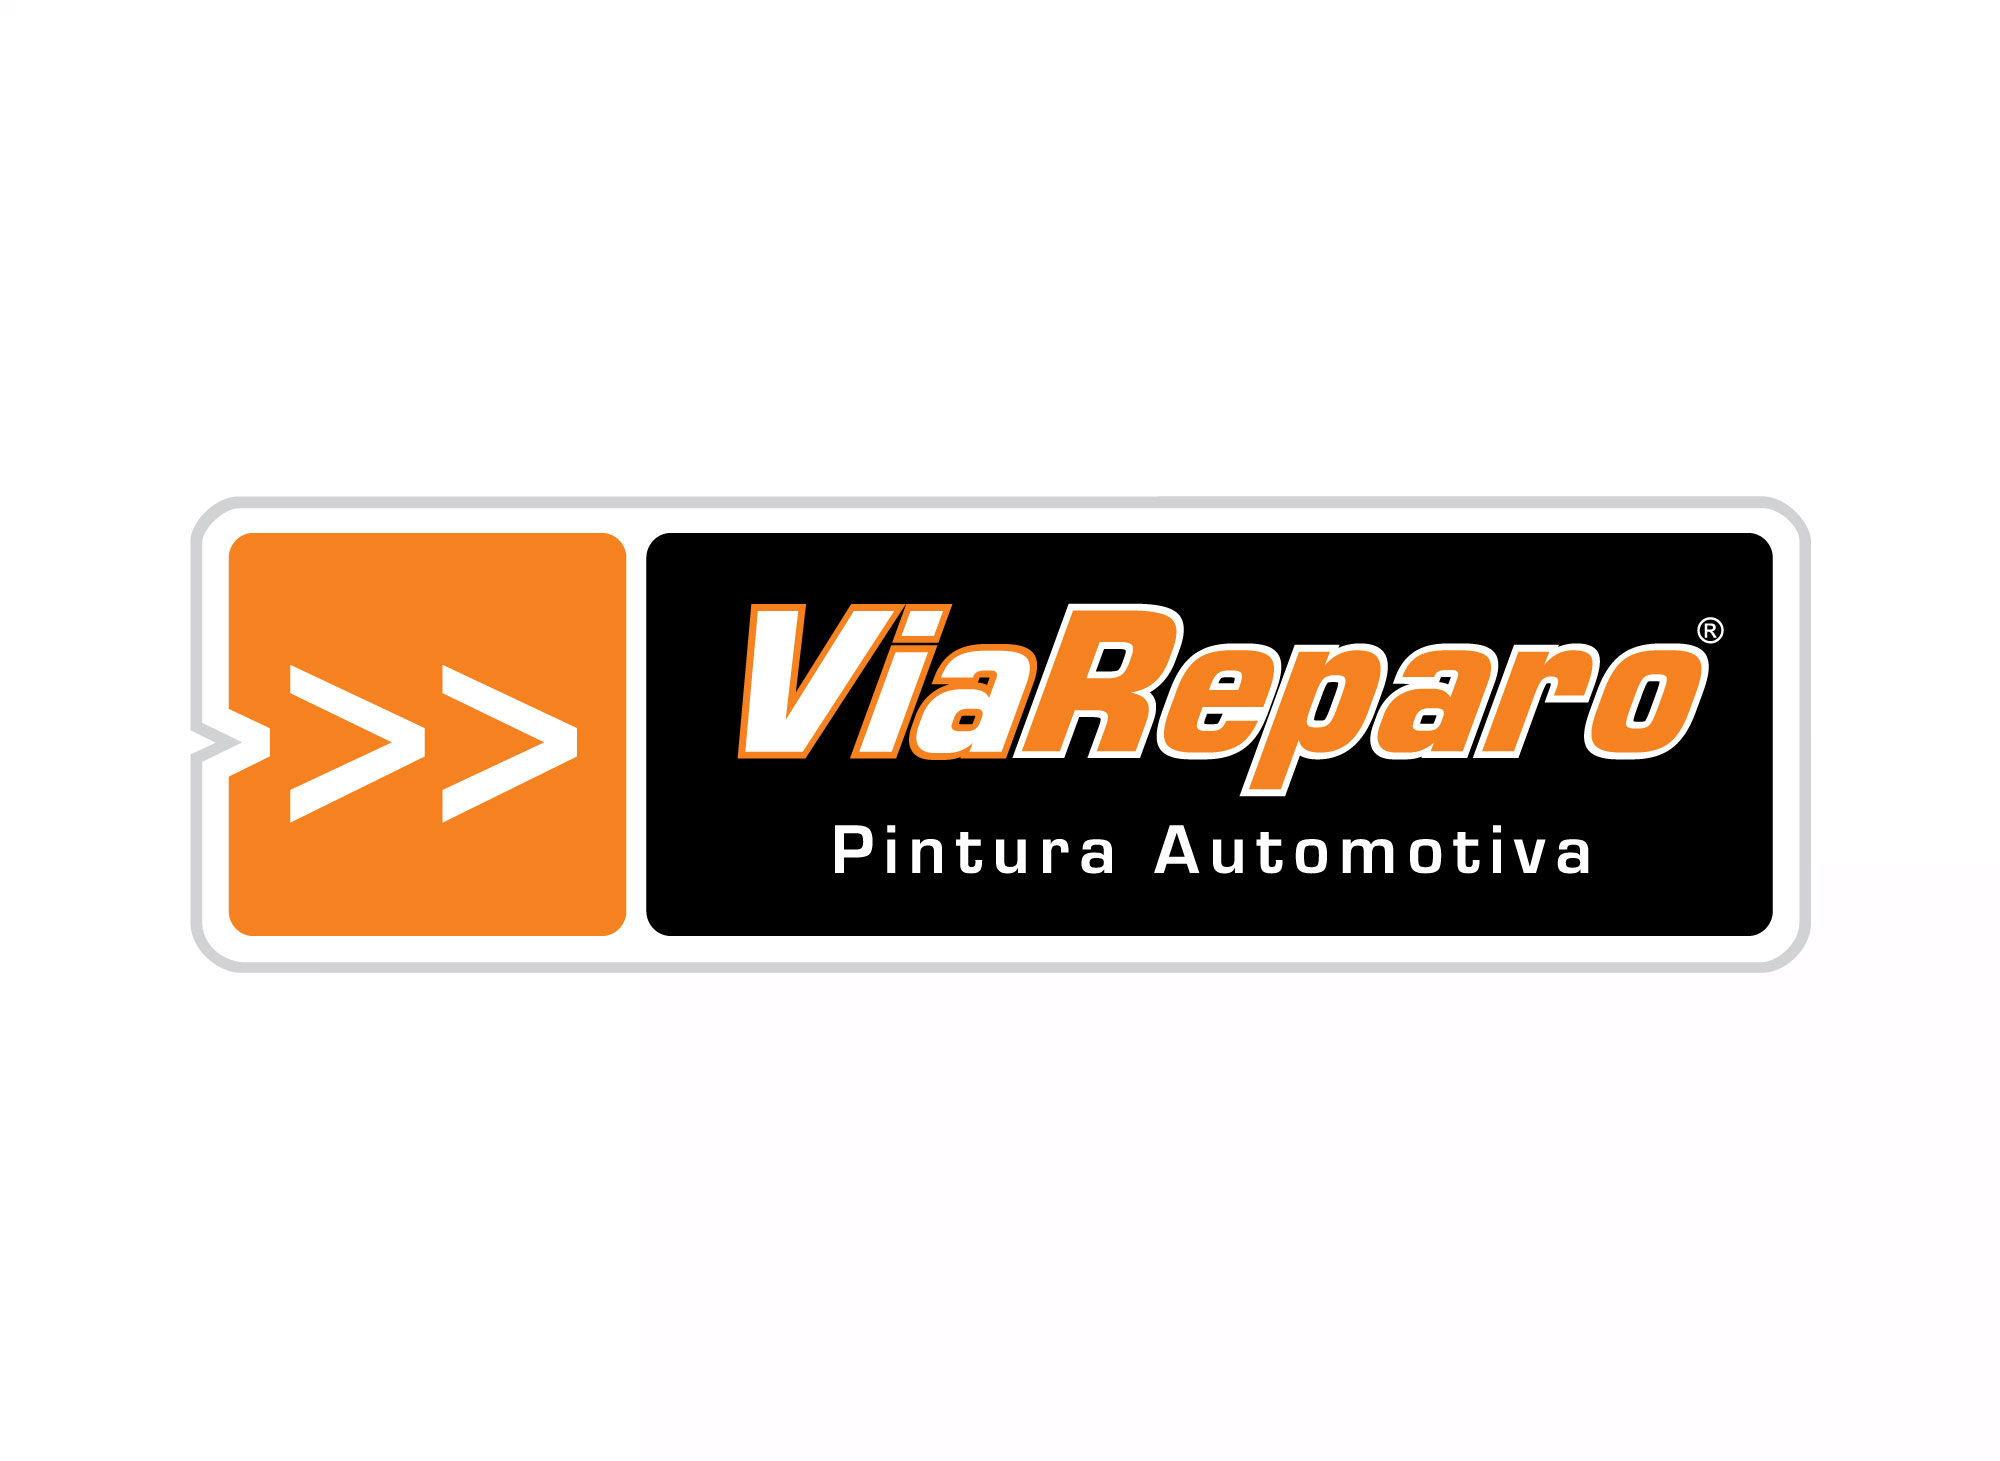 via-reparo-oficina-funilaria-pintura-automotiva-agencia-diretriz-digital-clientes-marketing